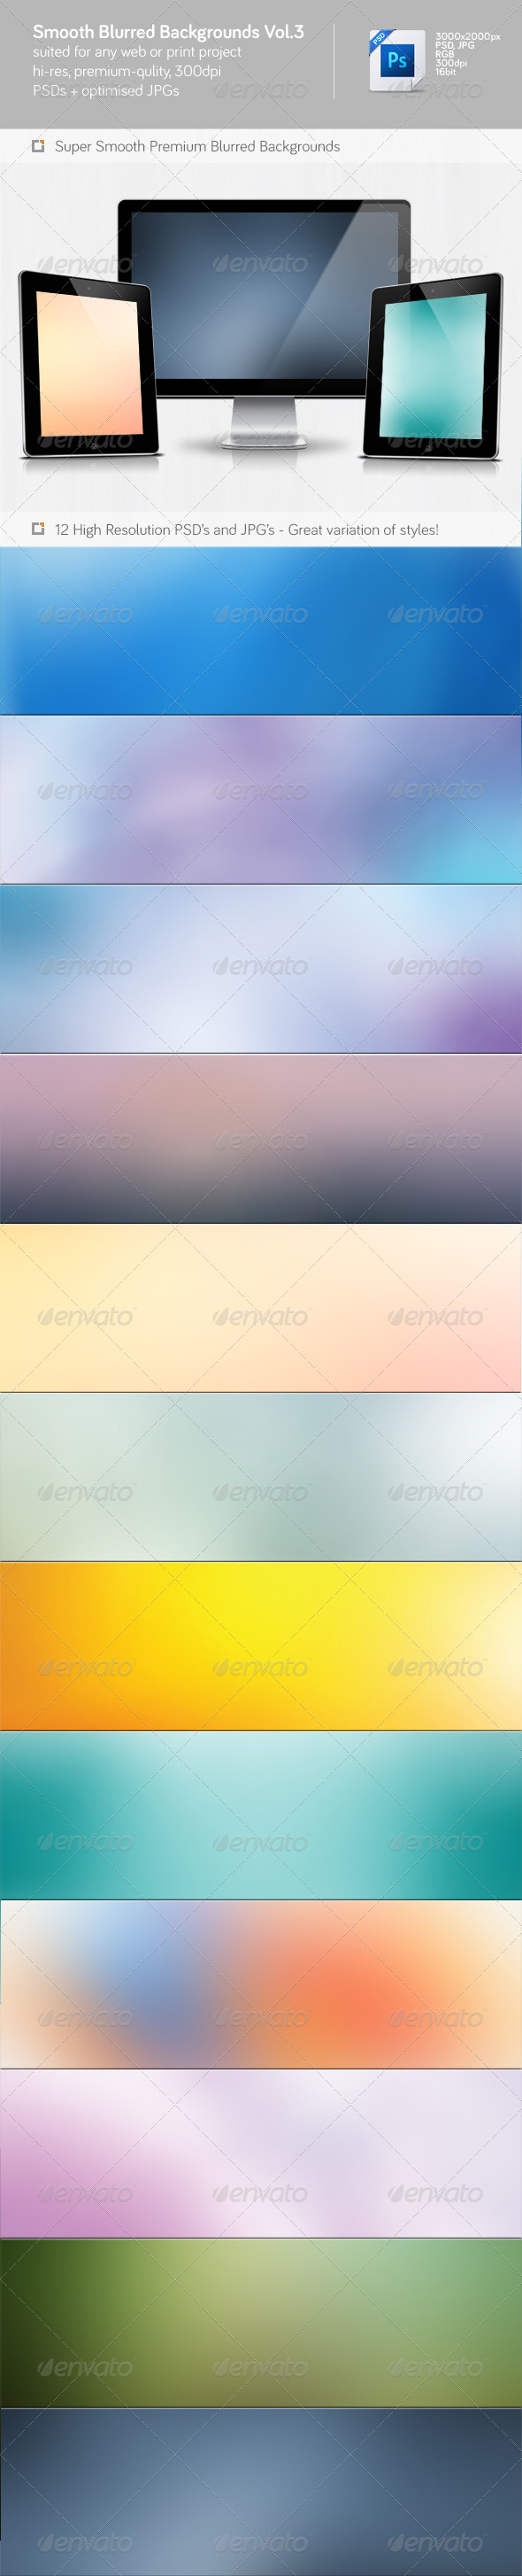 Smooth Blurred Backgrounds Vol.3